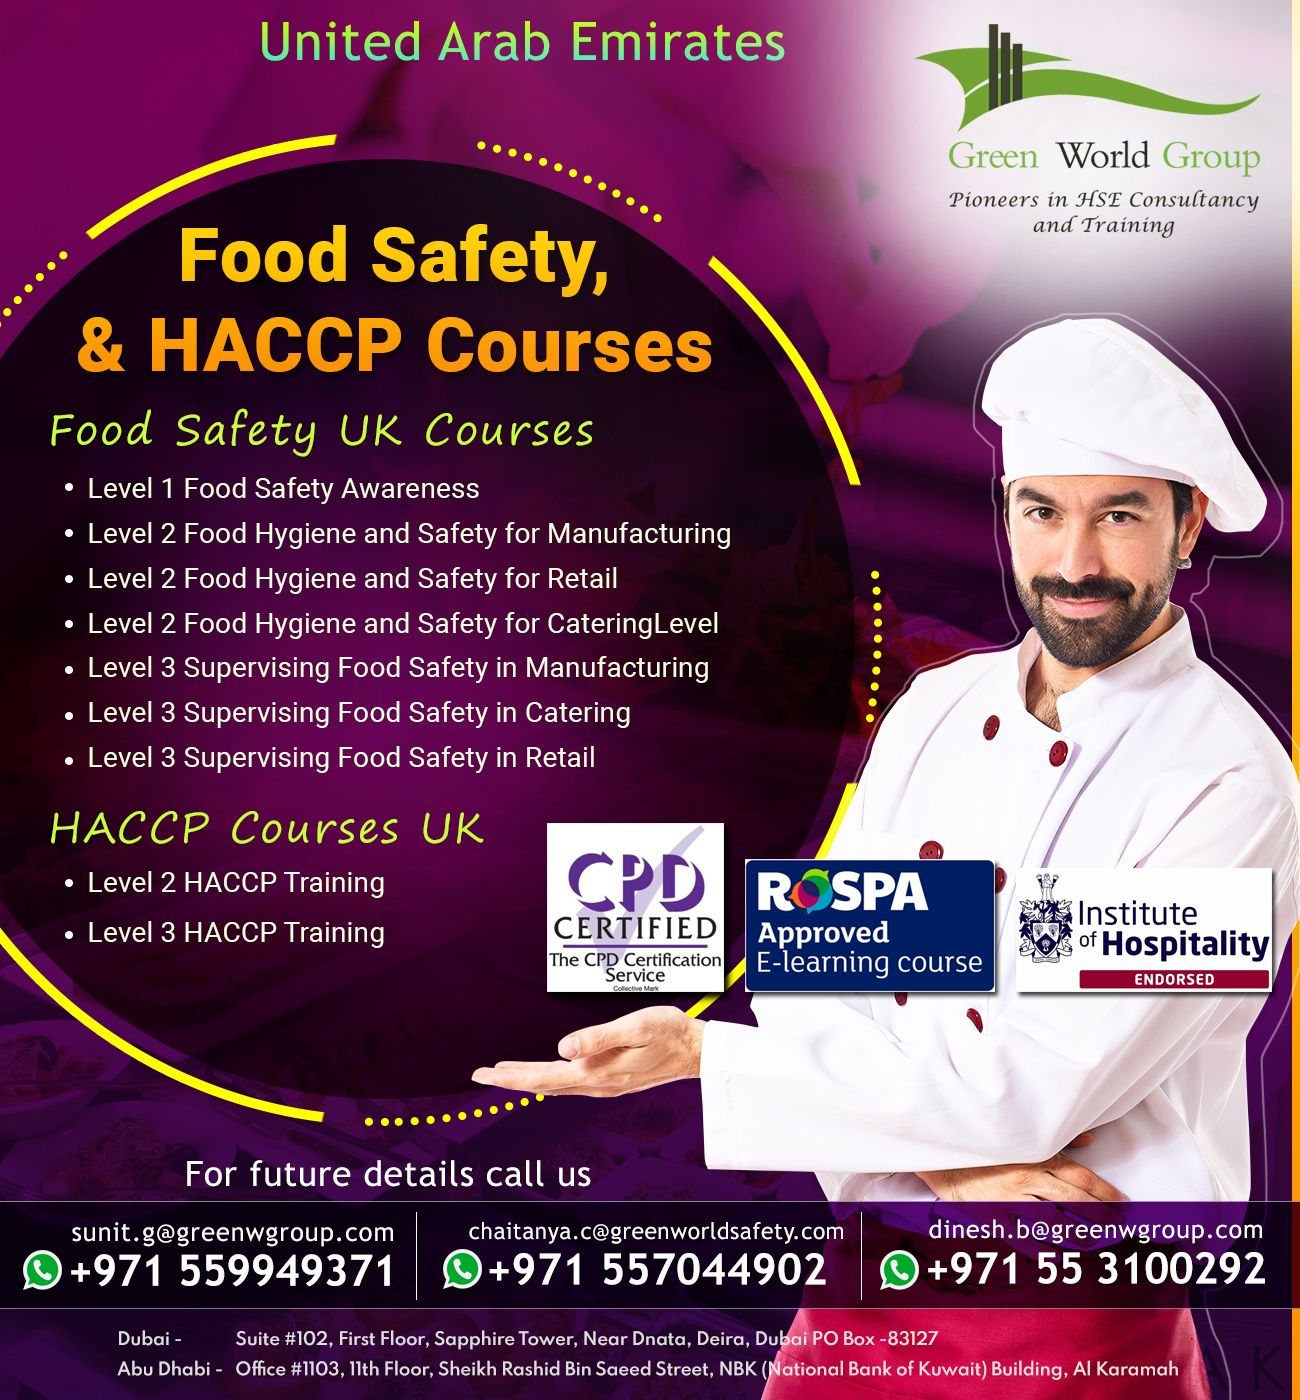 Join Food Safety, & HACCP Courses Live